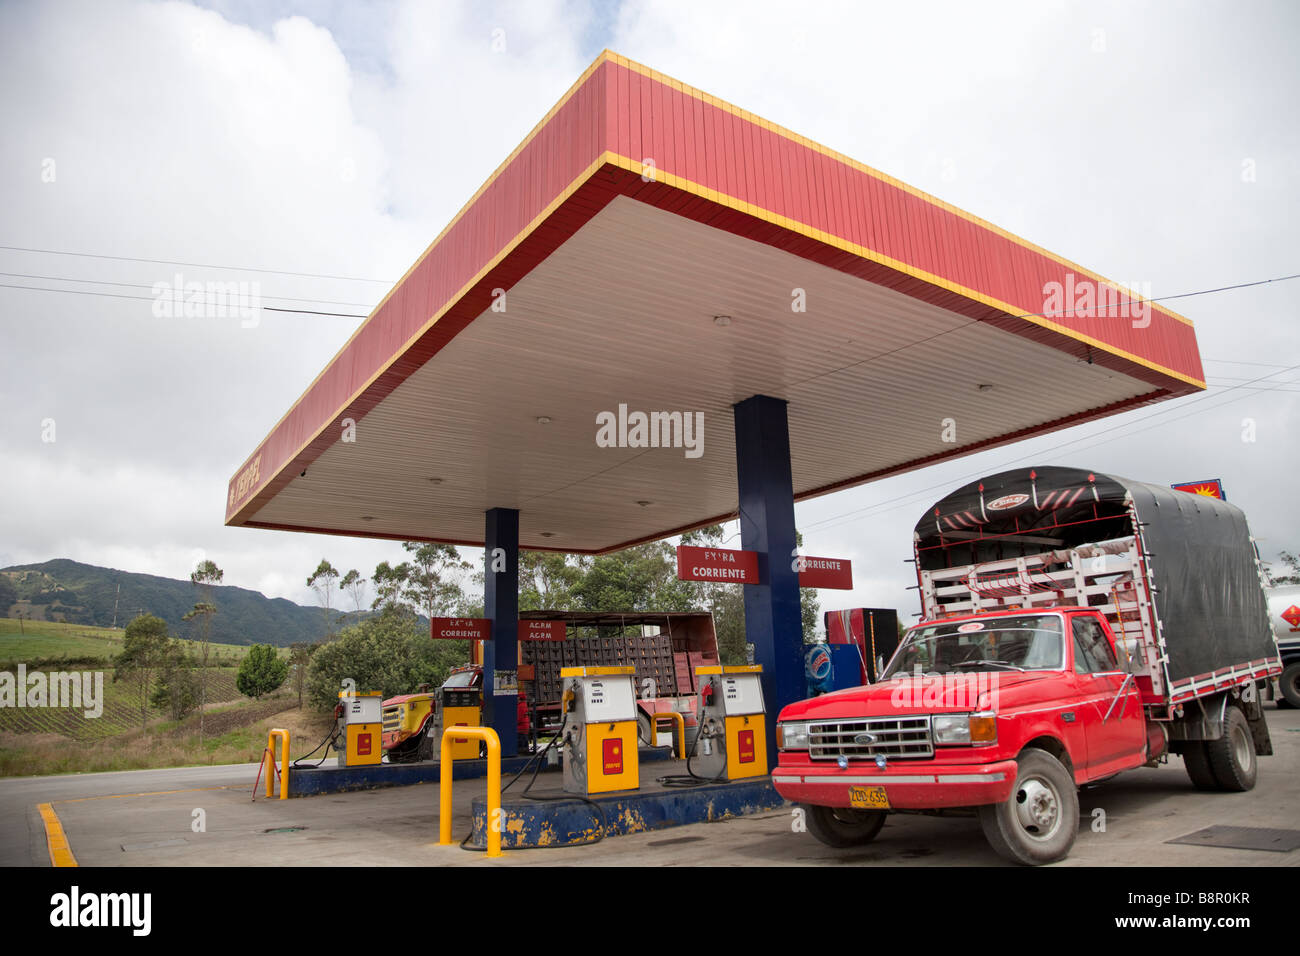 Near Gas Station >> Terpel Gas Station Near Bogota Colombia With Red Pick Up Truck